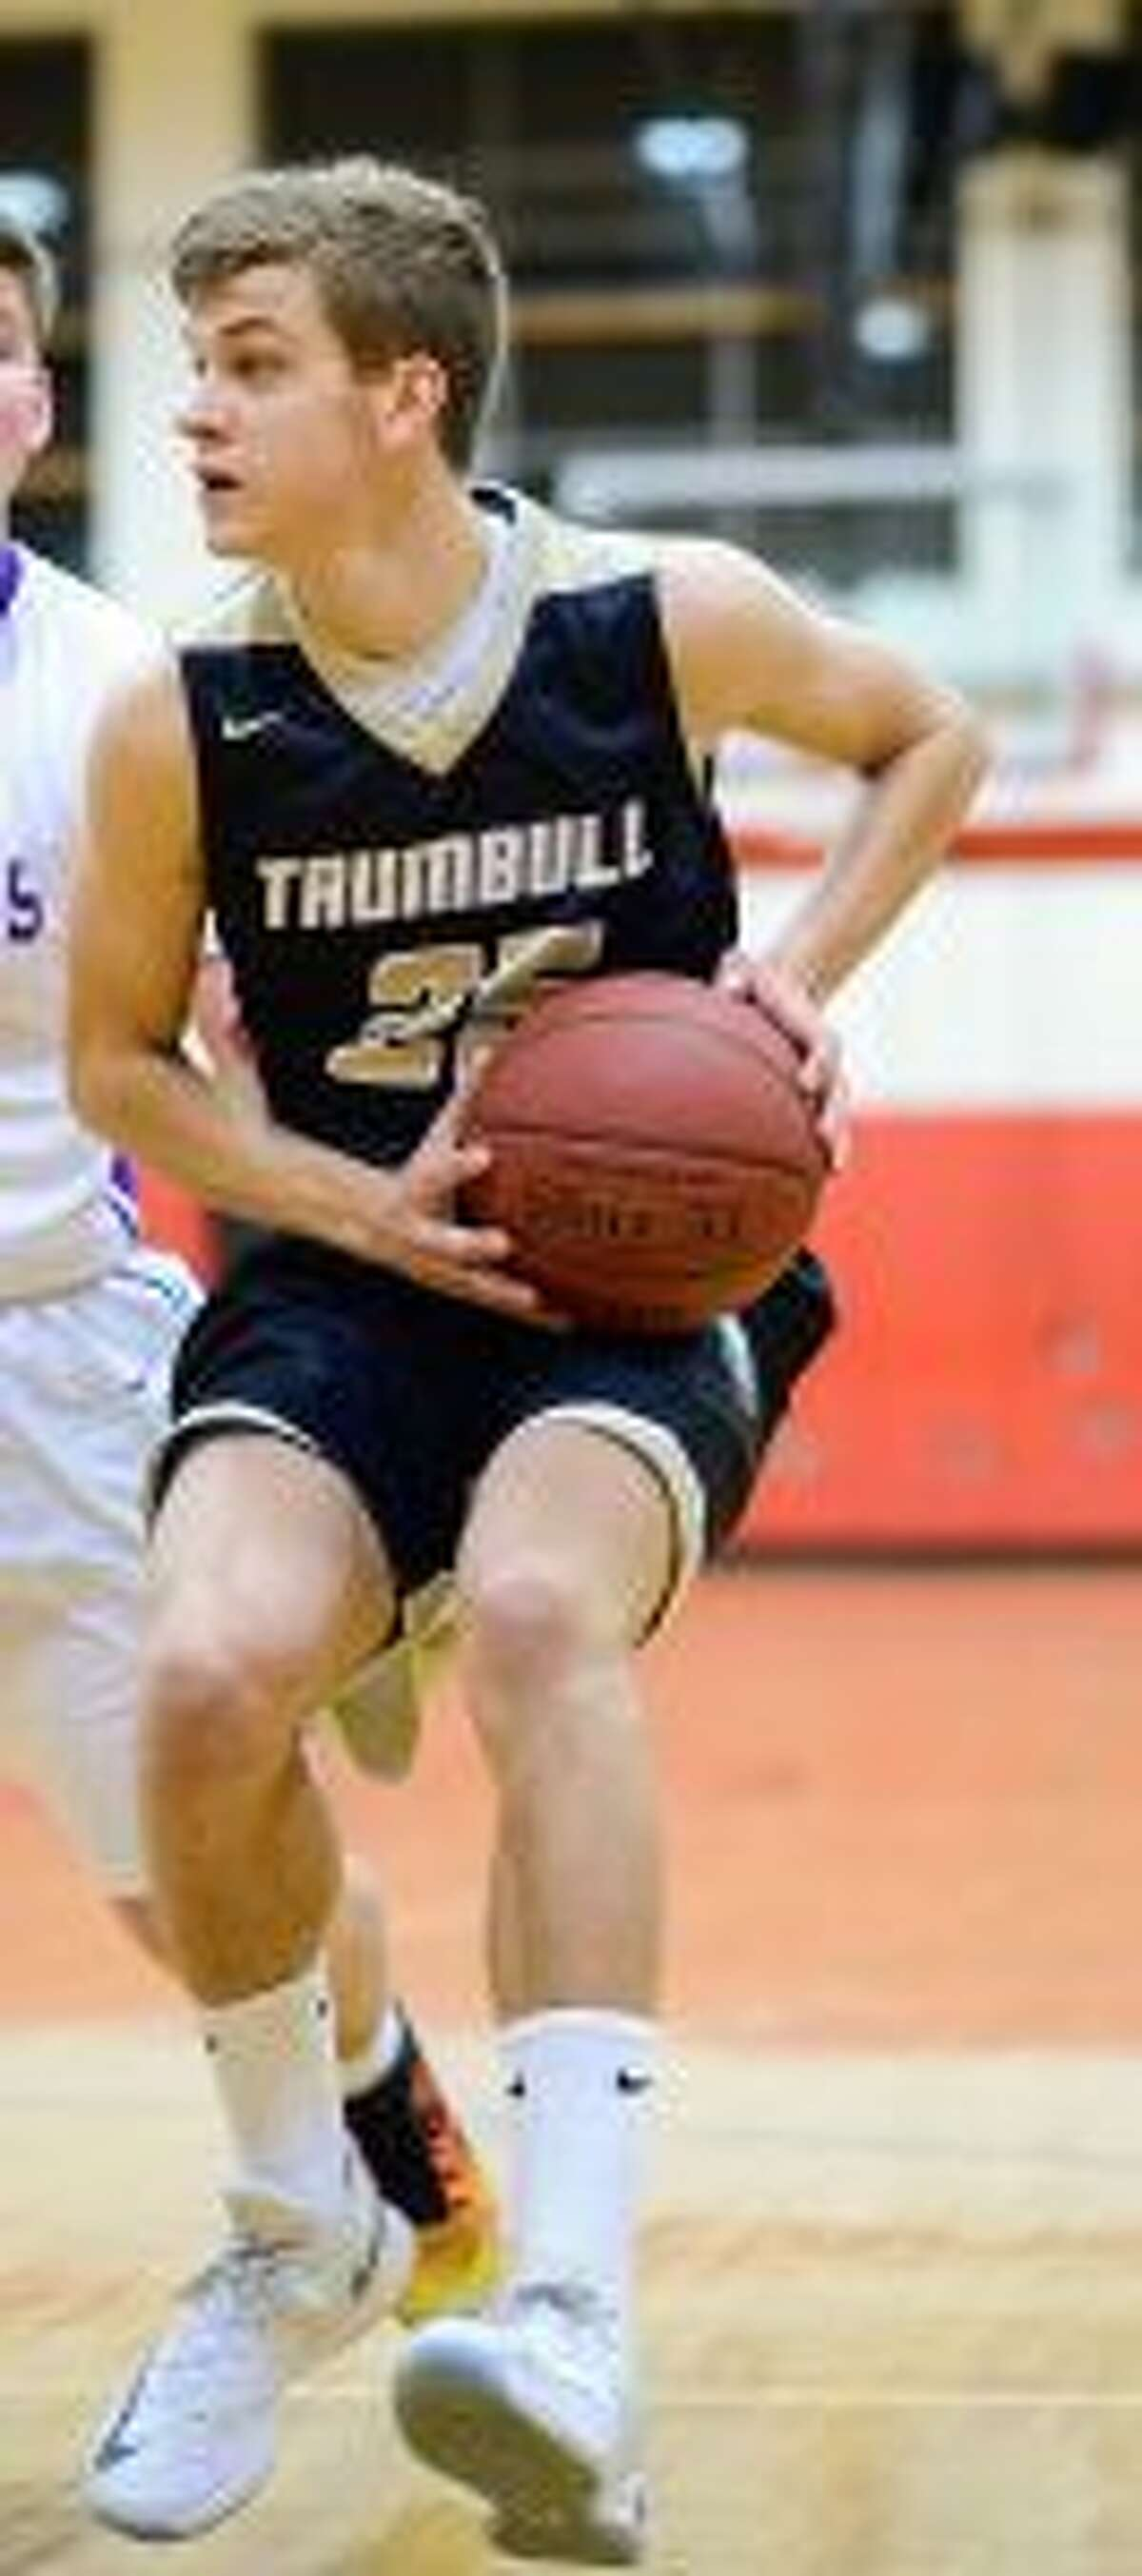 Trumbull High's J.J. Pfohl beat the buzzer with a basket to give his Eagles the win. - David G. Whitham photo